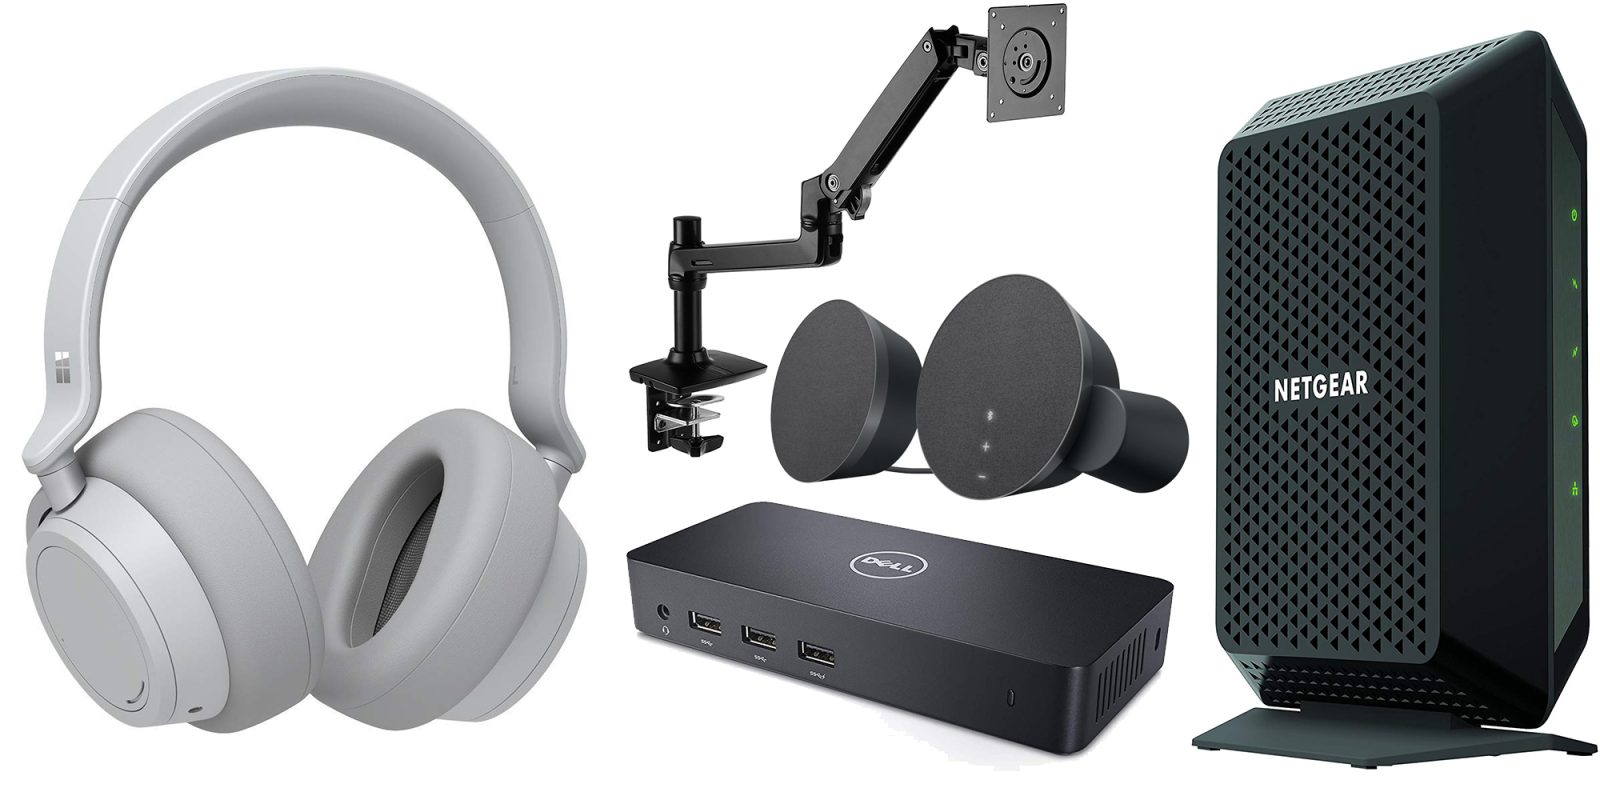 Mac and PC accessories from Logitech, NETGEAR, and more from $7 for Prime Day